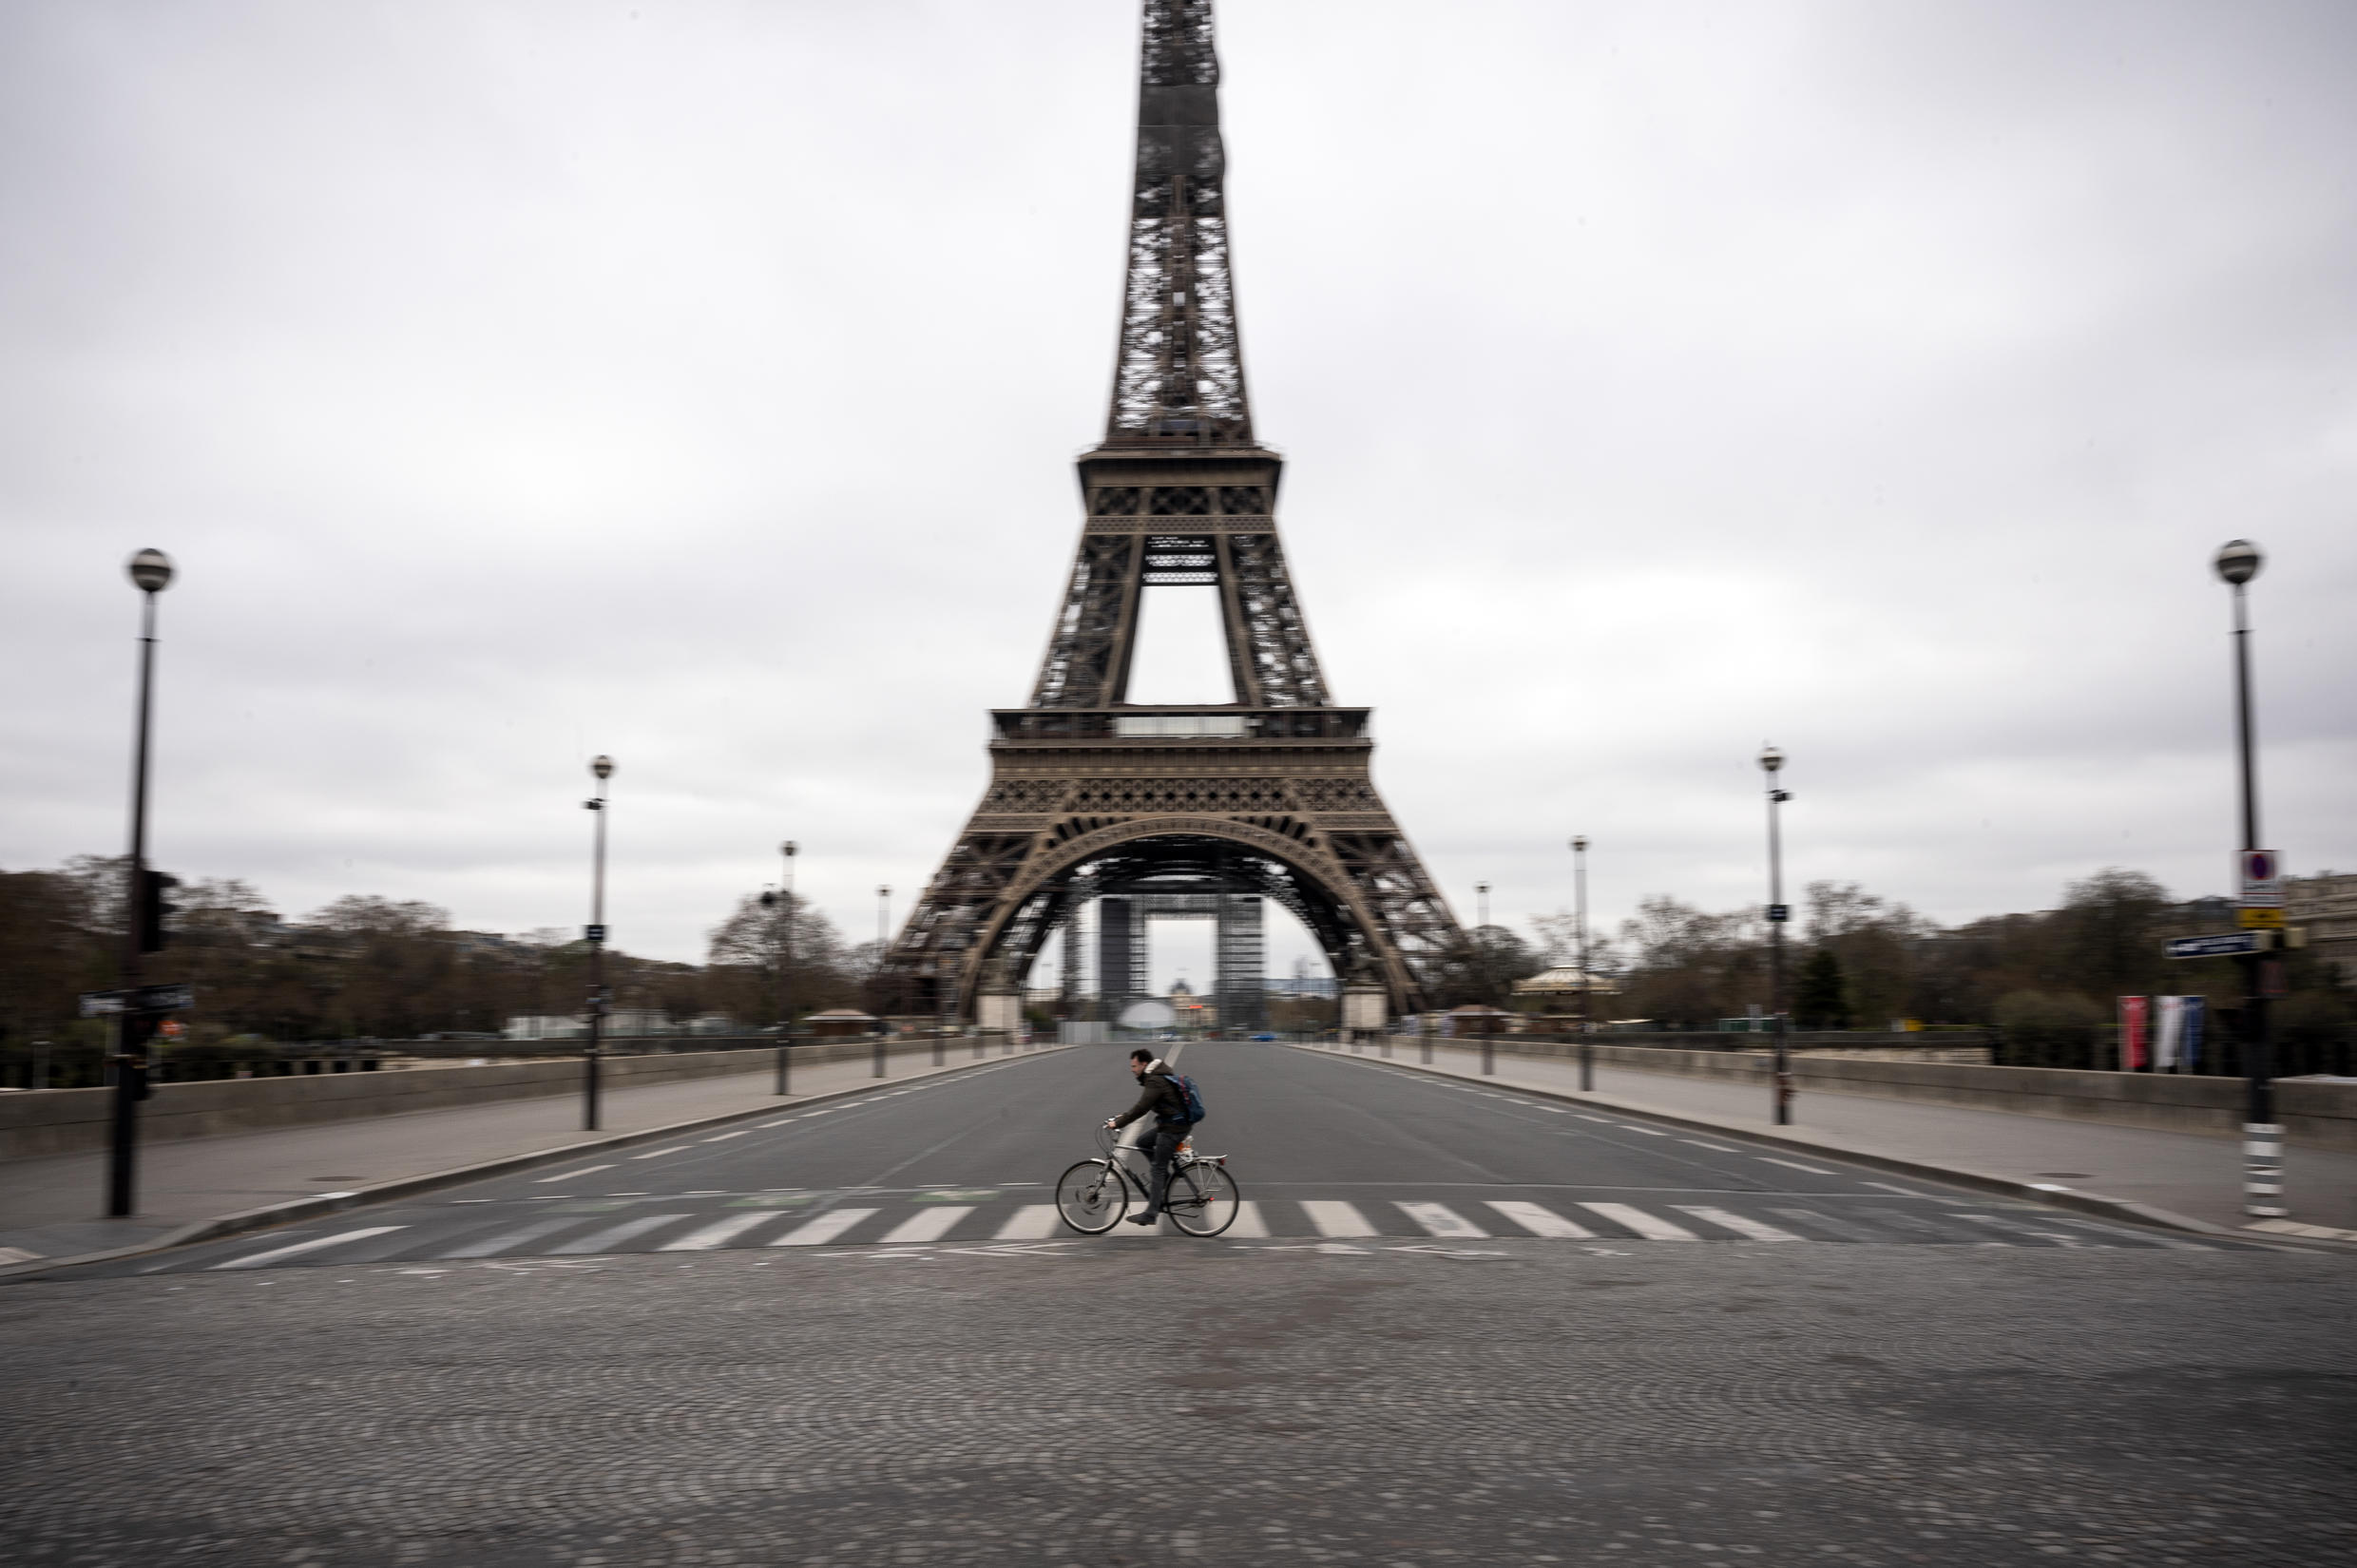 A cycling boom in Paris, experts and advocates say, is not a happy accident but the result of years of planning accelerated by a series of crises